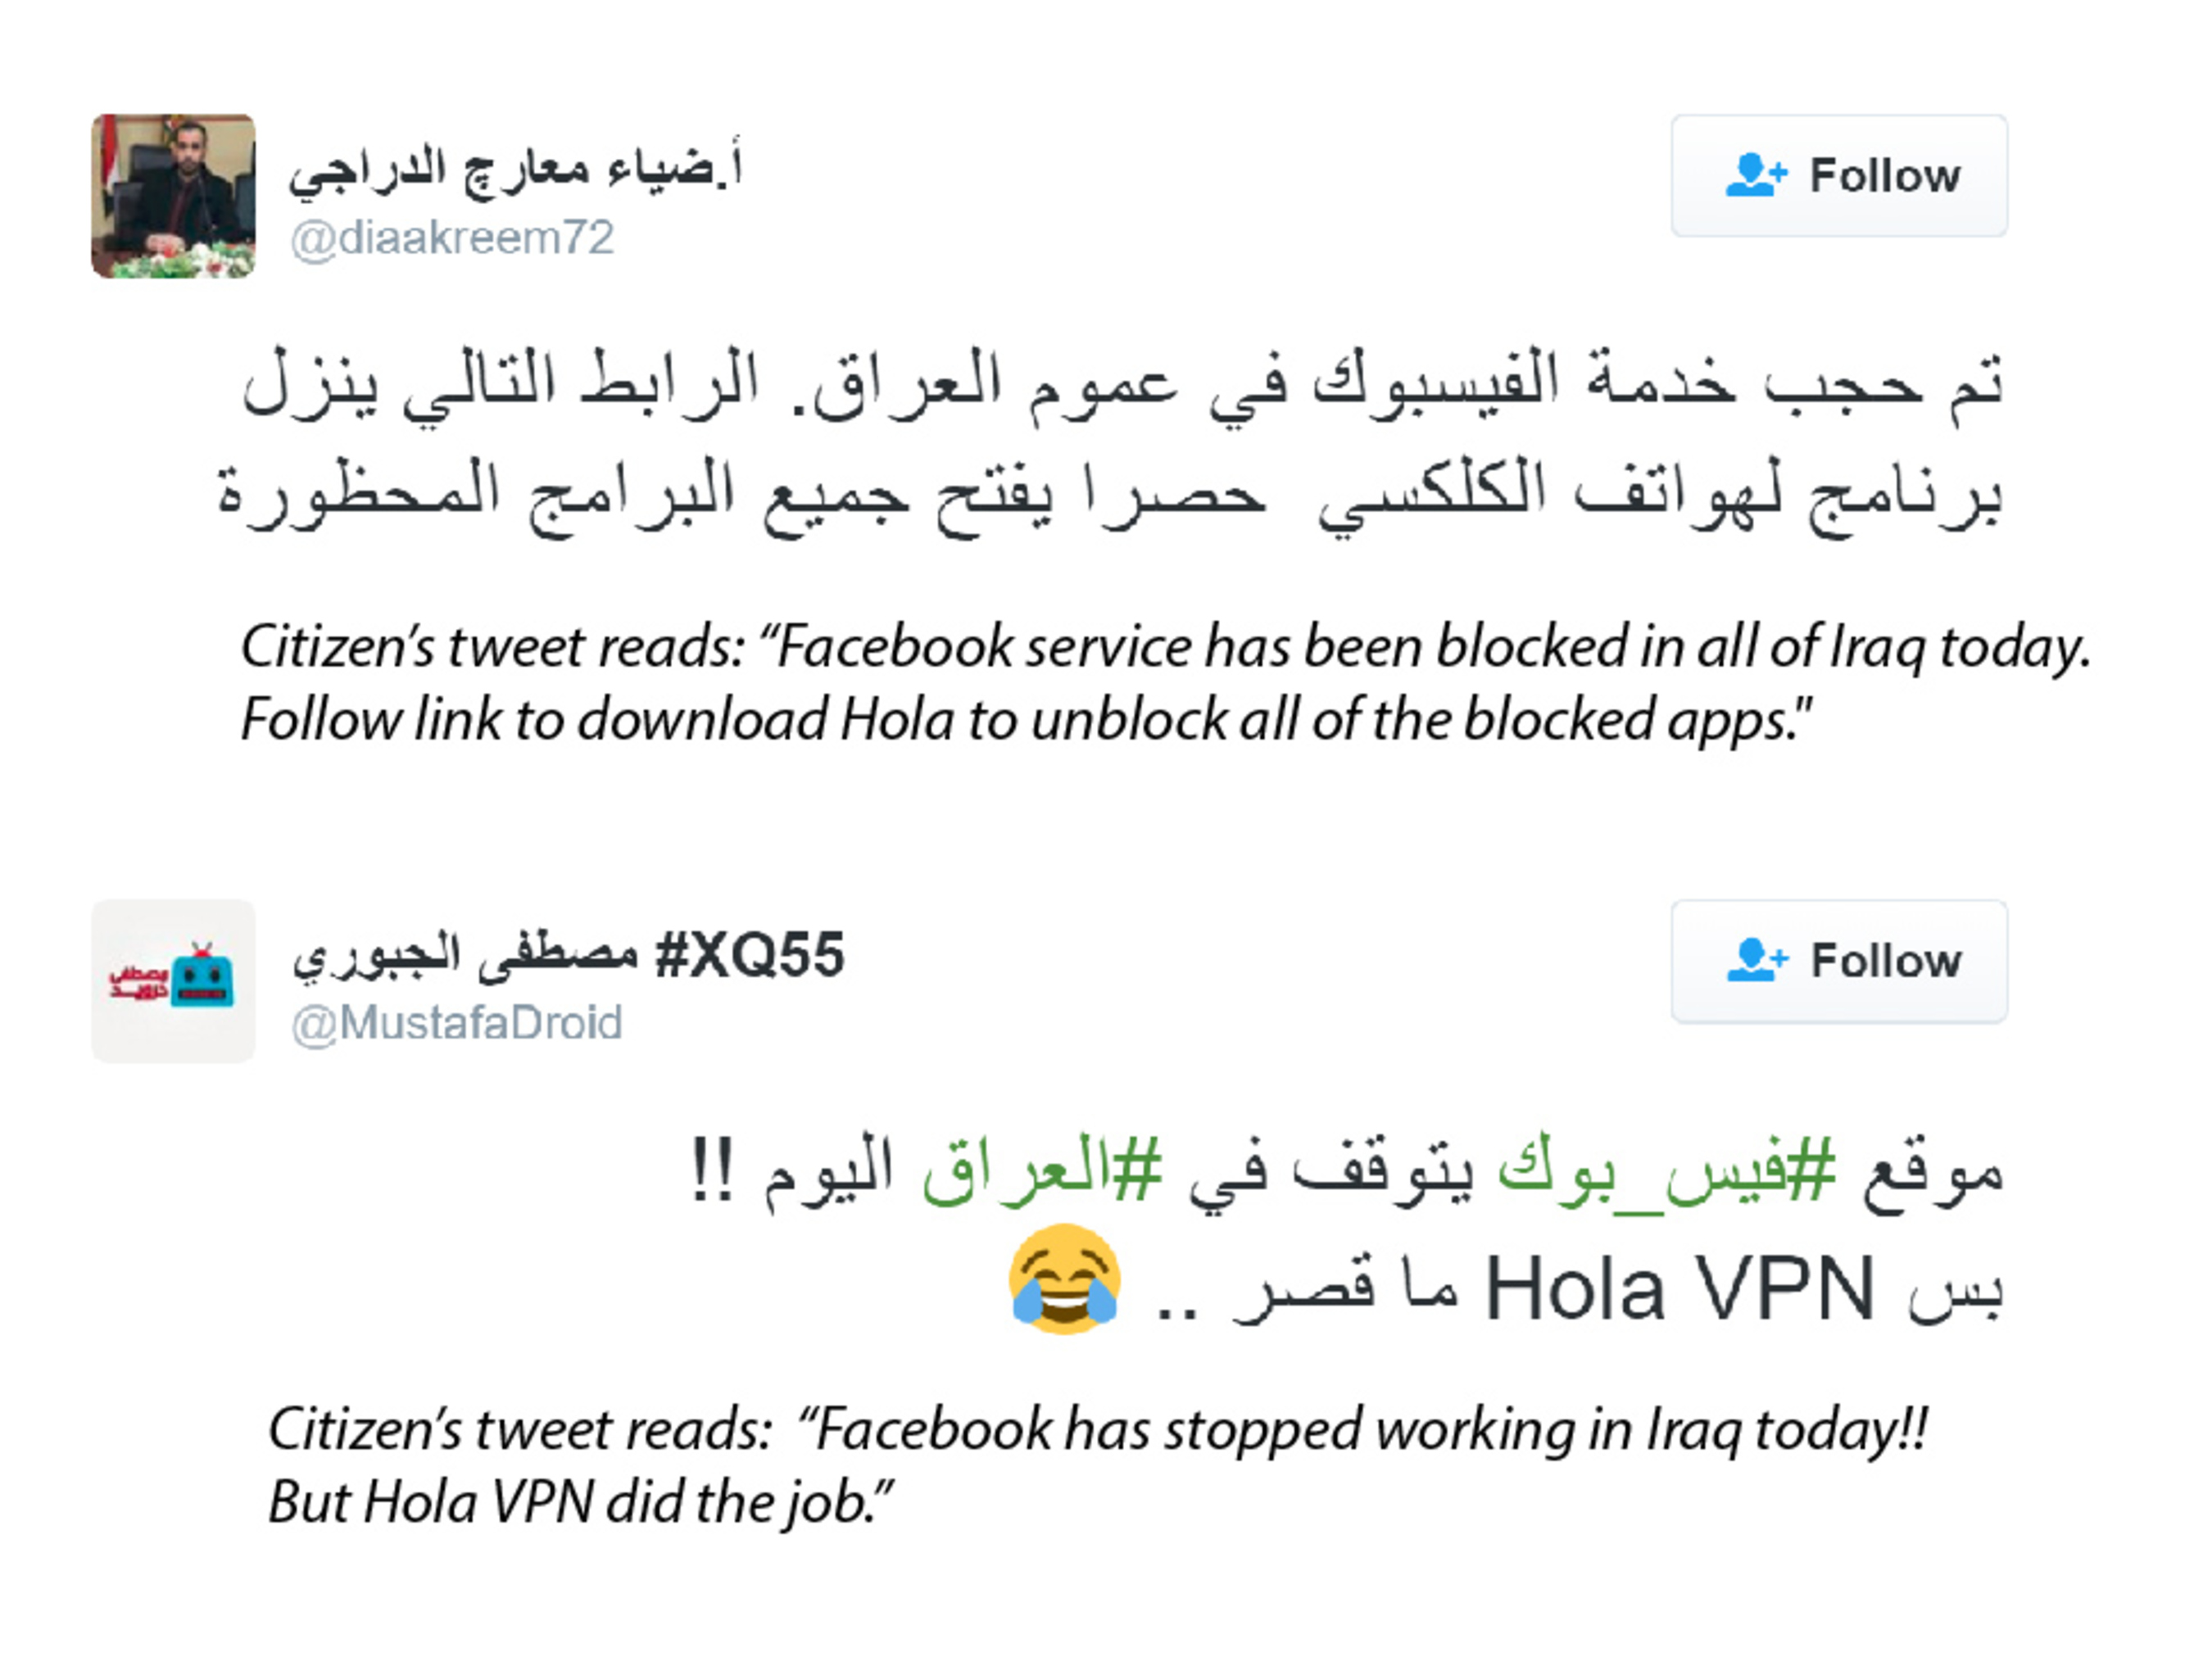 Iraq pulls plug on social networks, citizens use Hola to fight back